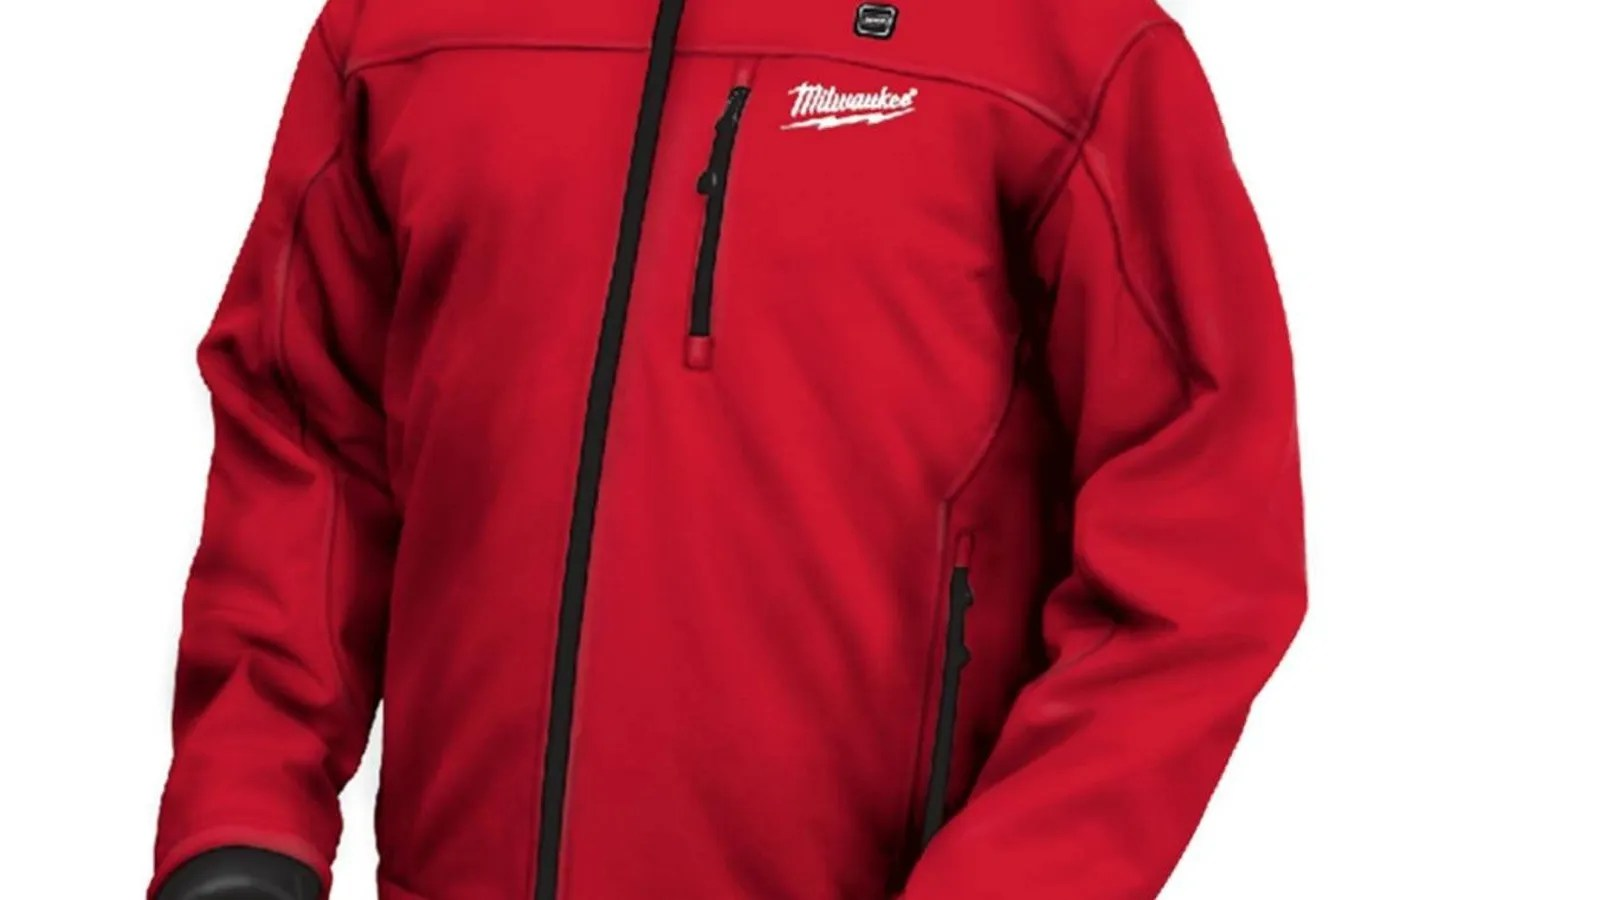 M12 Heated Jacket Power Yourself Up For 8 Hours With Milwaukee S M12 Heated Jacket